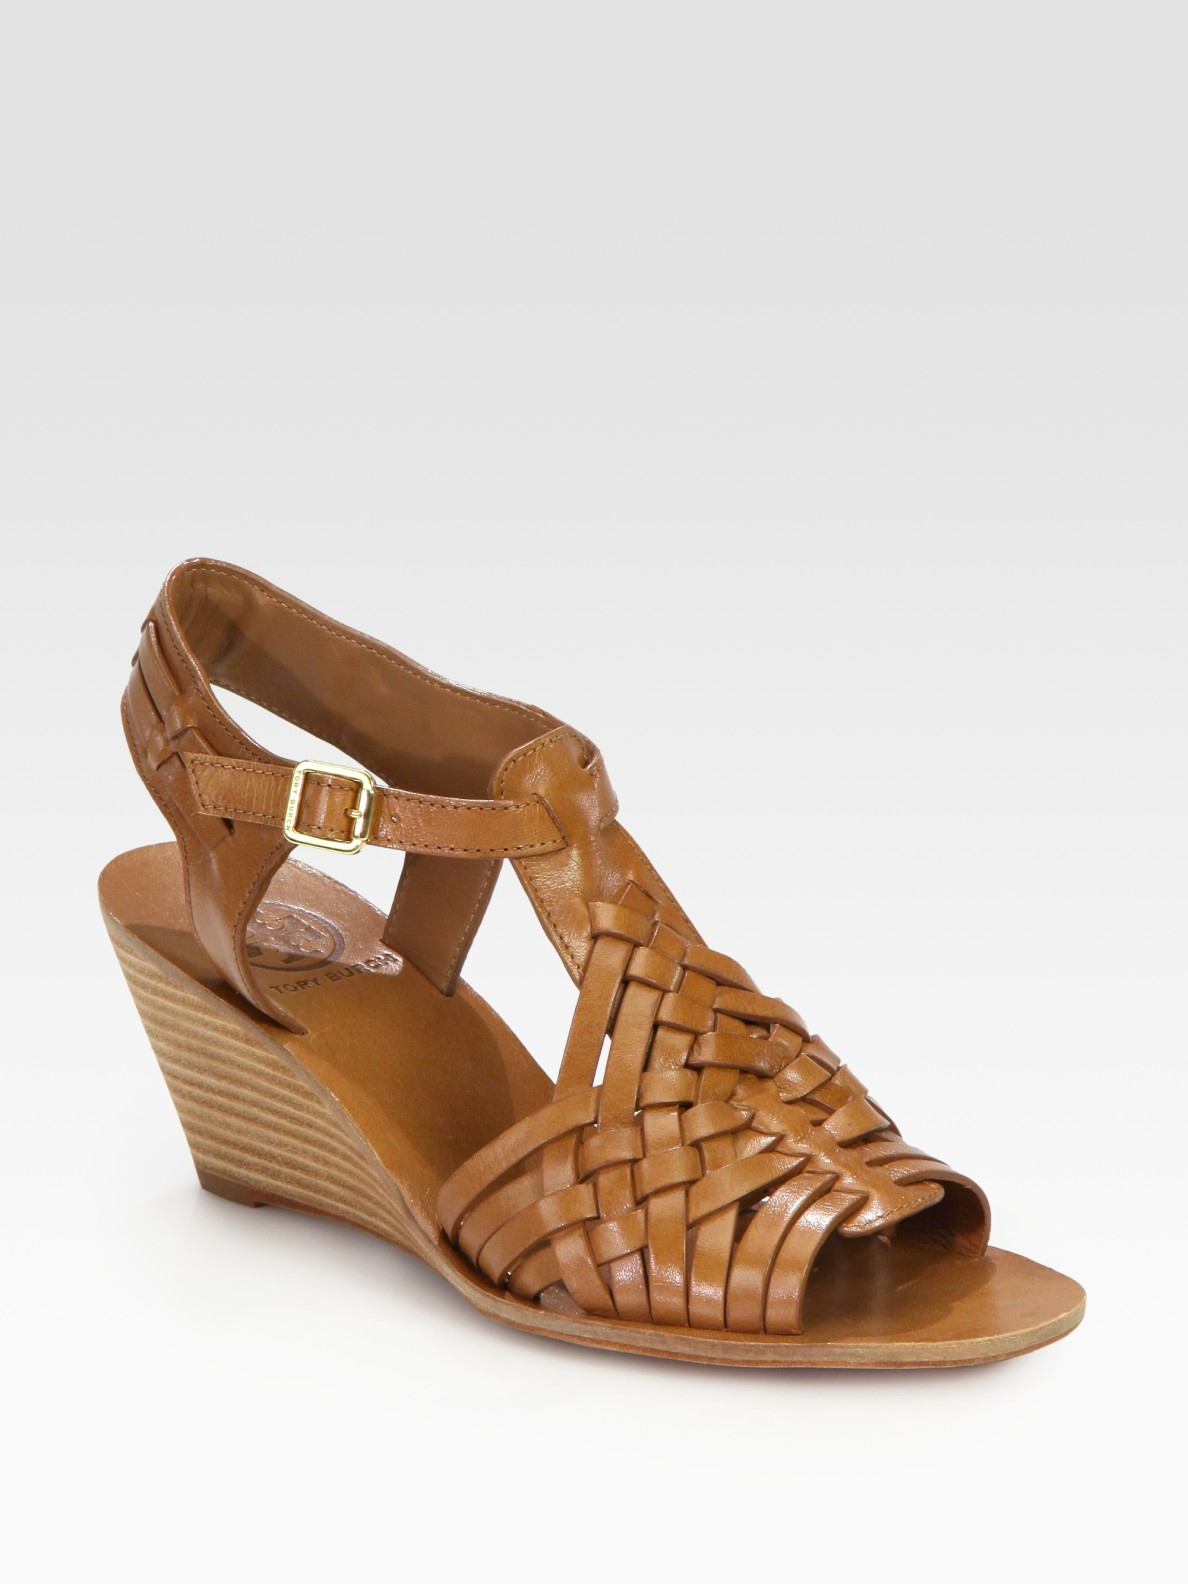 c04d9608ac05 Lyst - Tory Burch Nadia Leather Wedge Sandals in Brown